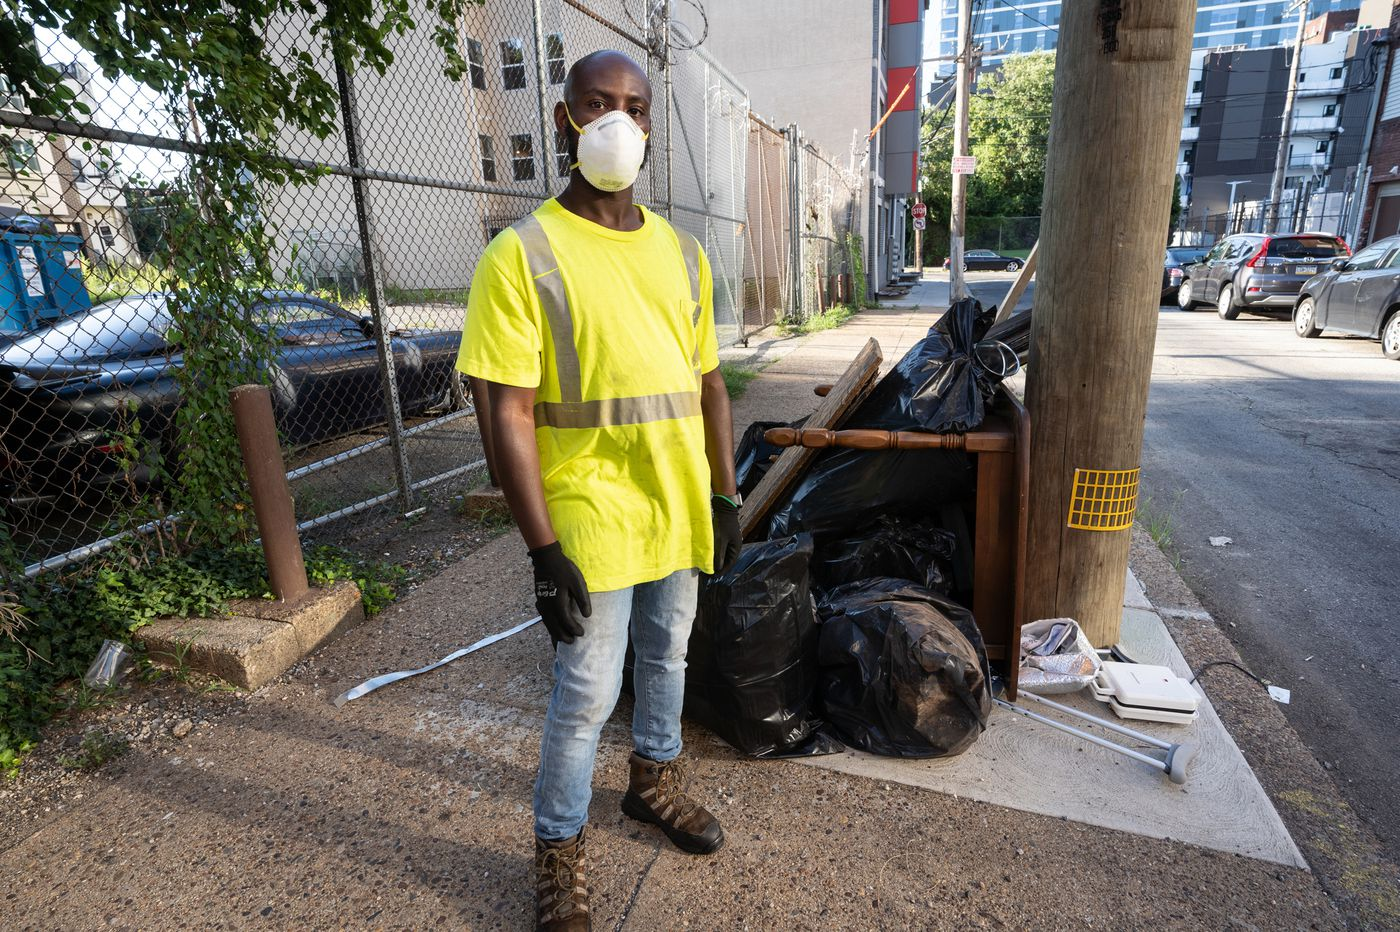 'Ya Fav Trashman' gives an inside look at Philly trash pickup on Instagram, and the city is listening